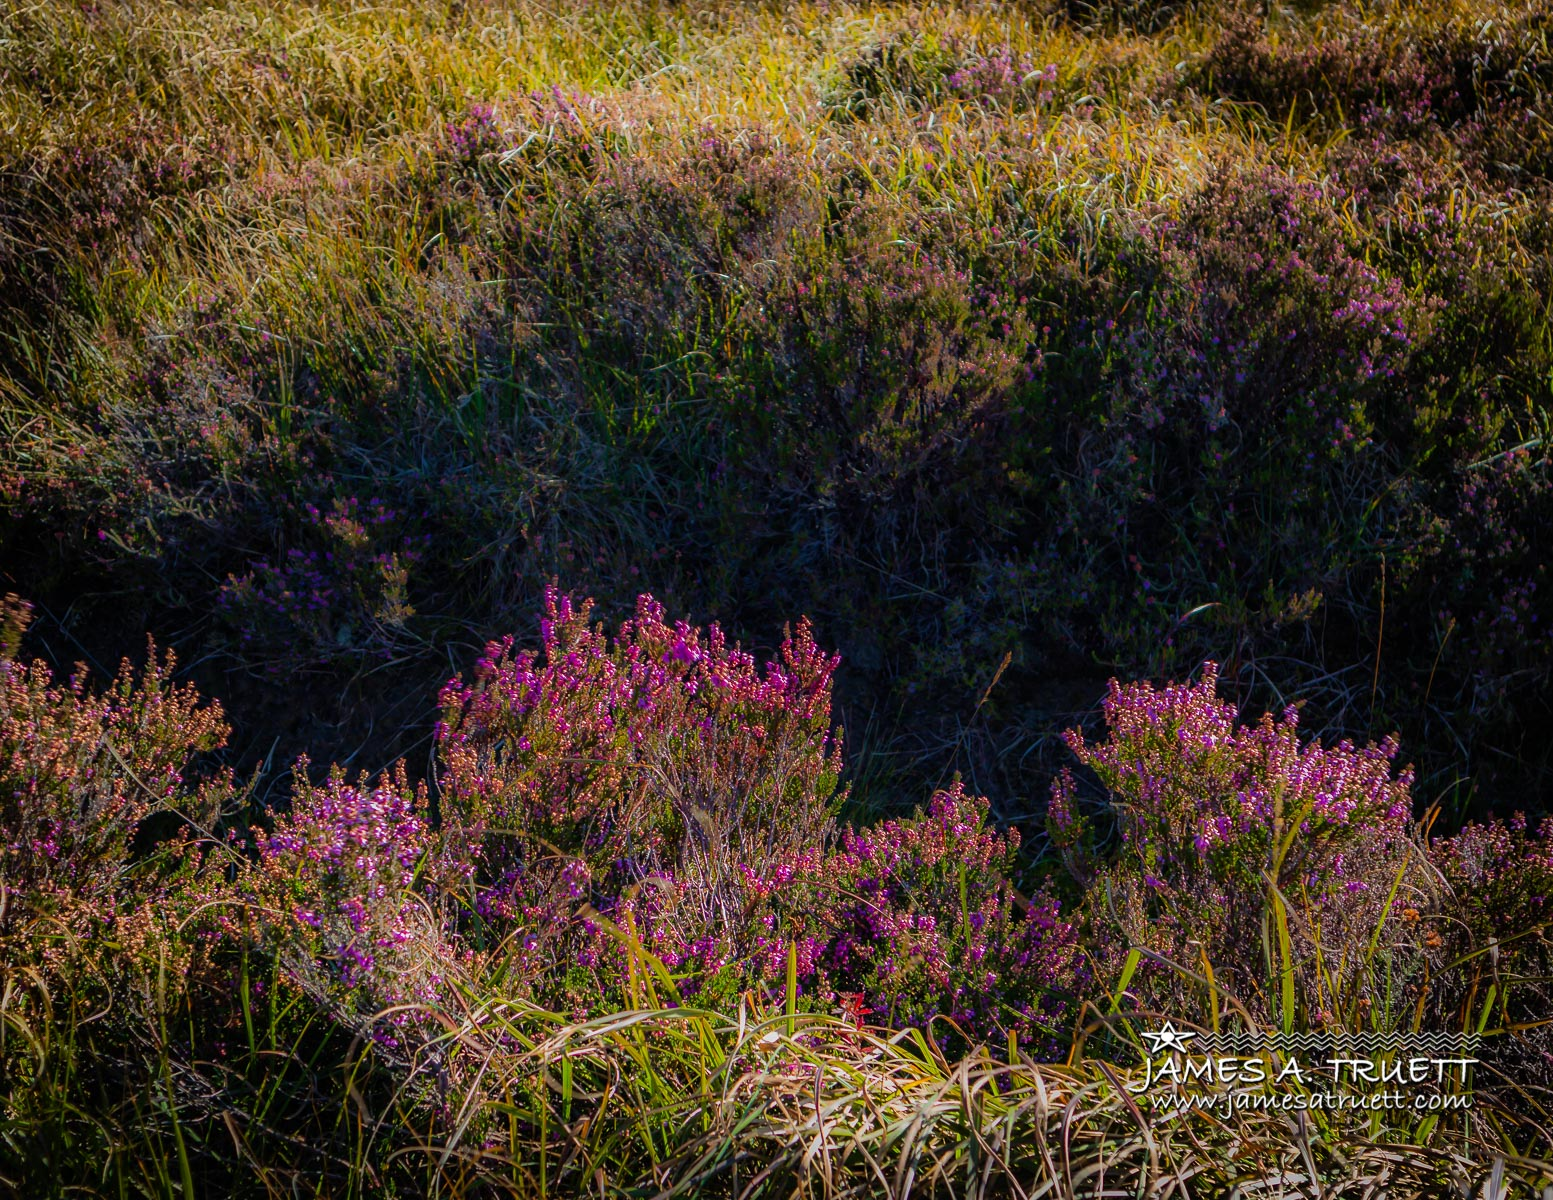 Flowers in the bog